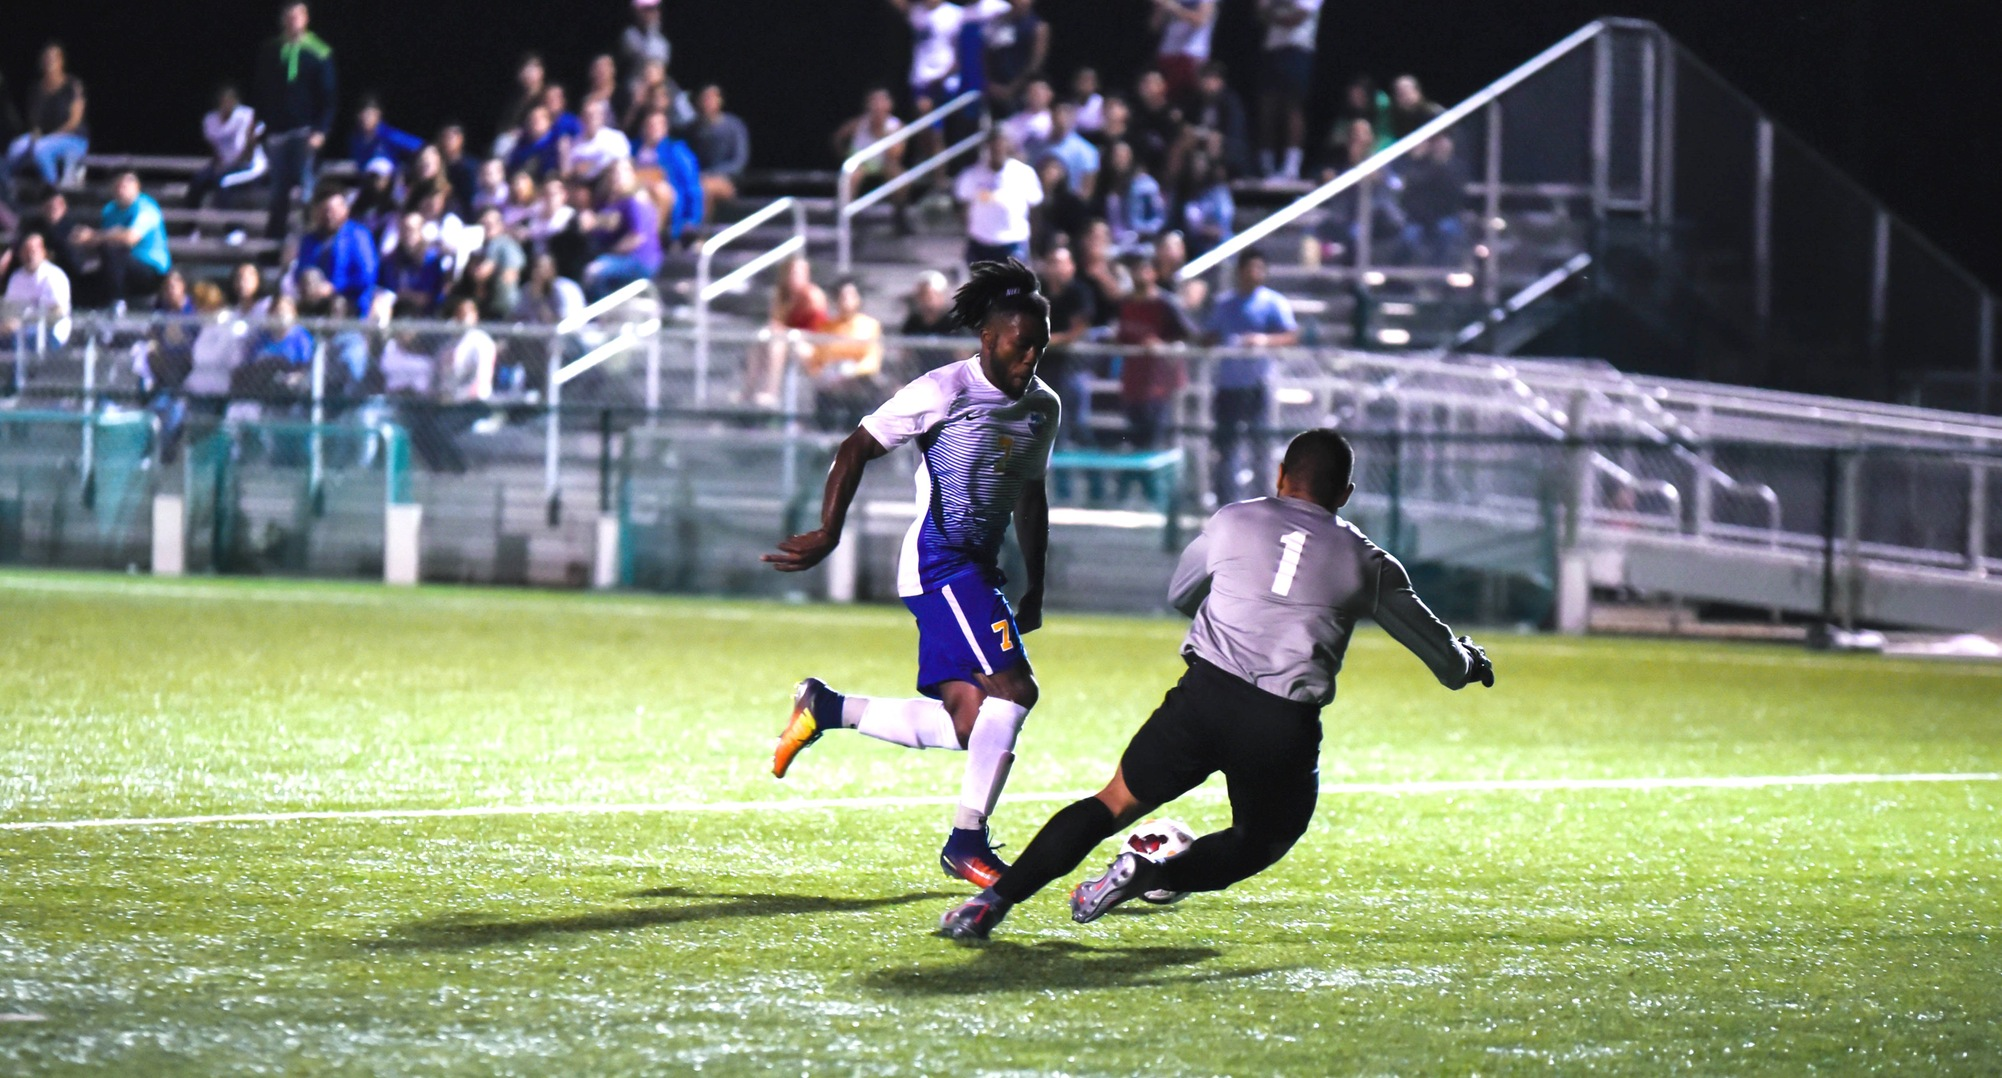 Men's Soccer Completes Undefeated Regular Season with 2-0 Win over Bob Jones